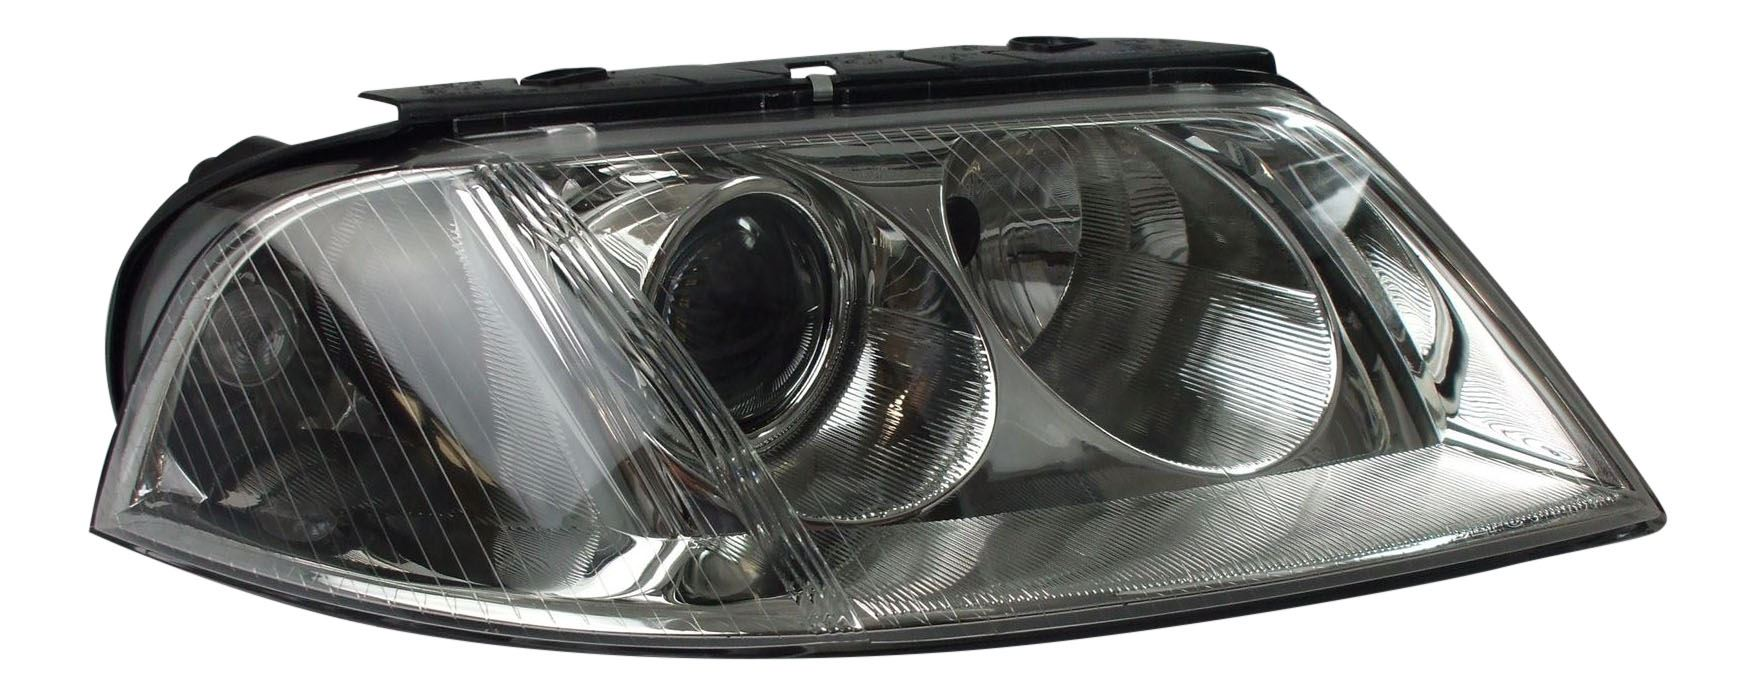 VW Passat Mk5 B5.5 Estate 12/2000-9/2005 Headlight Headlamp Drivers Side O/S